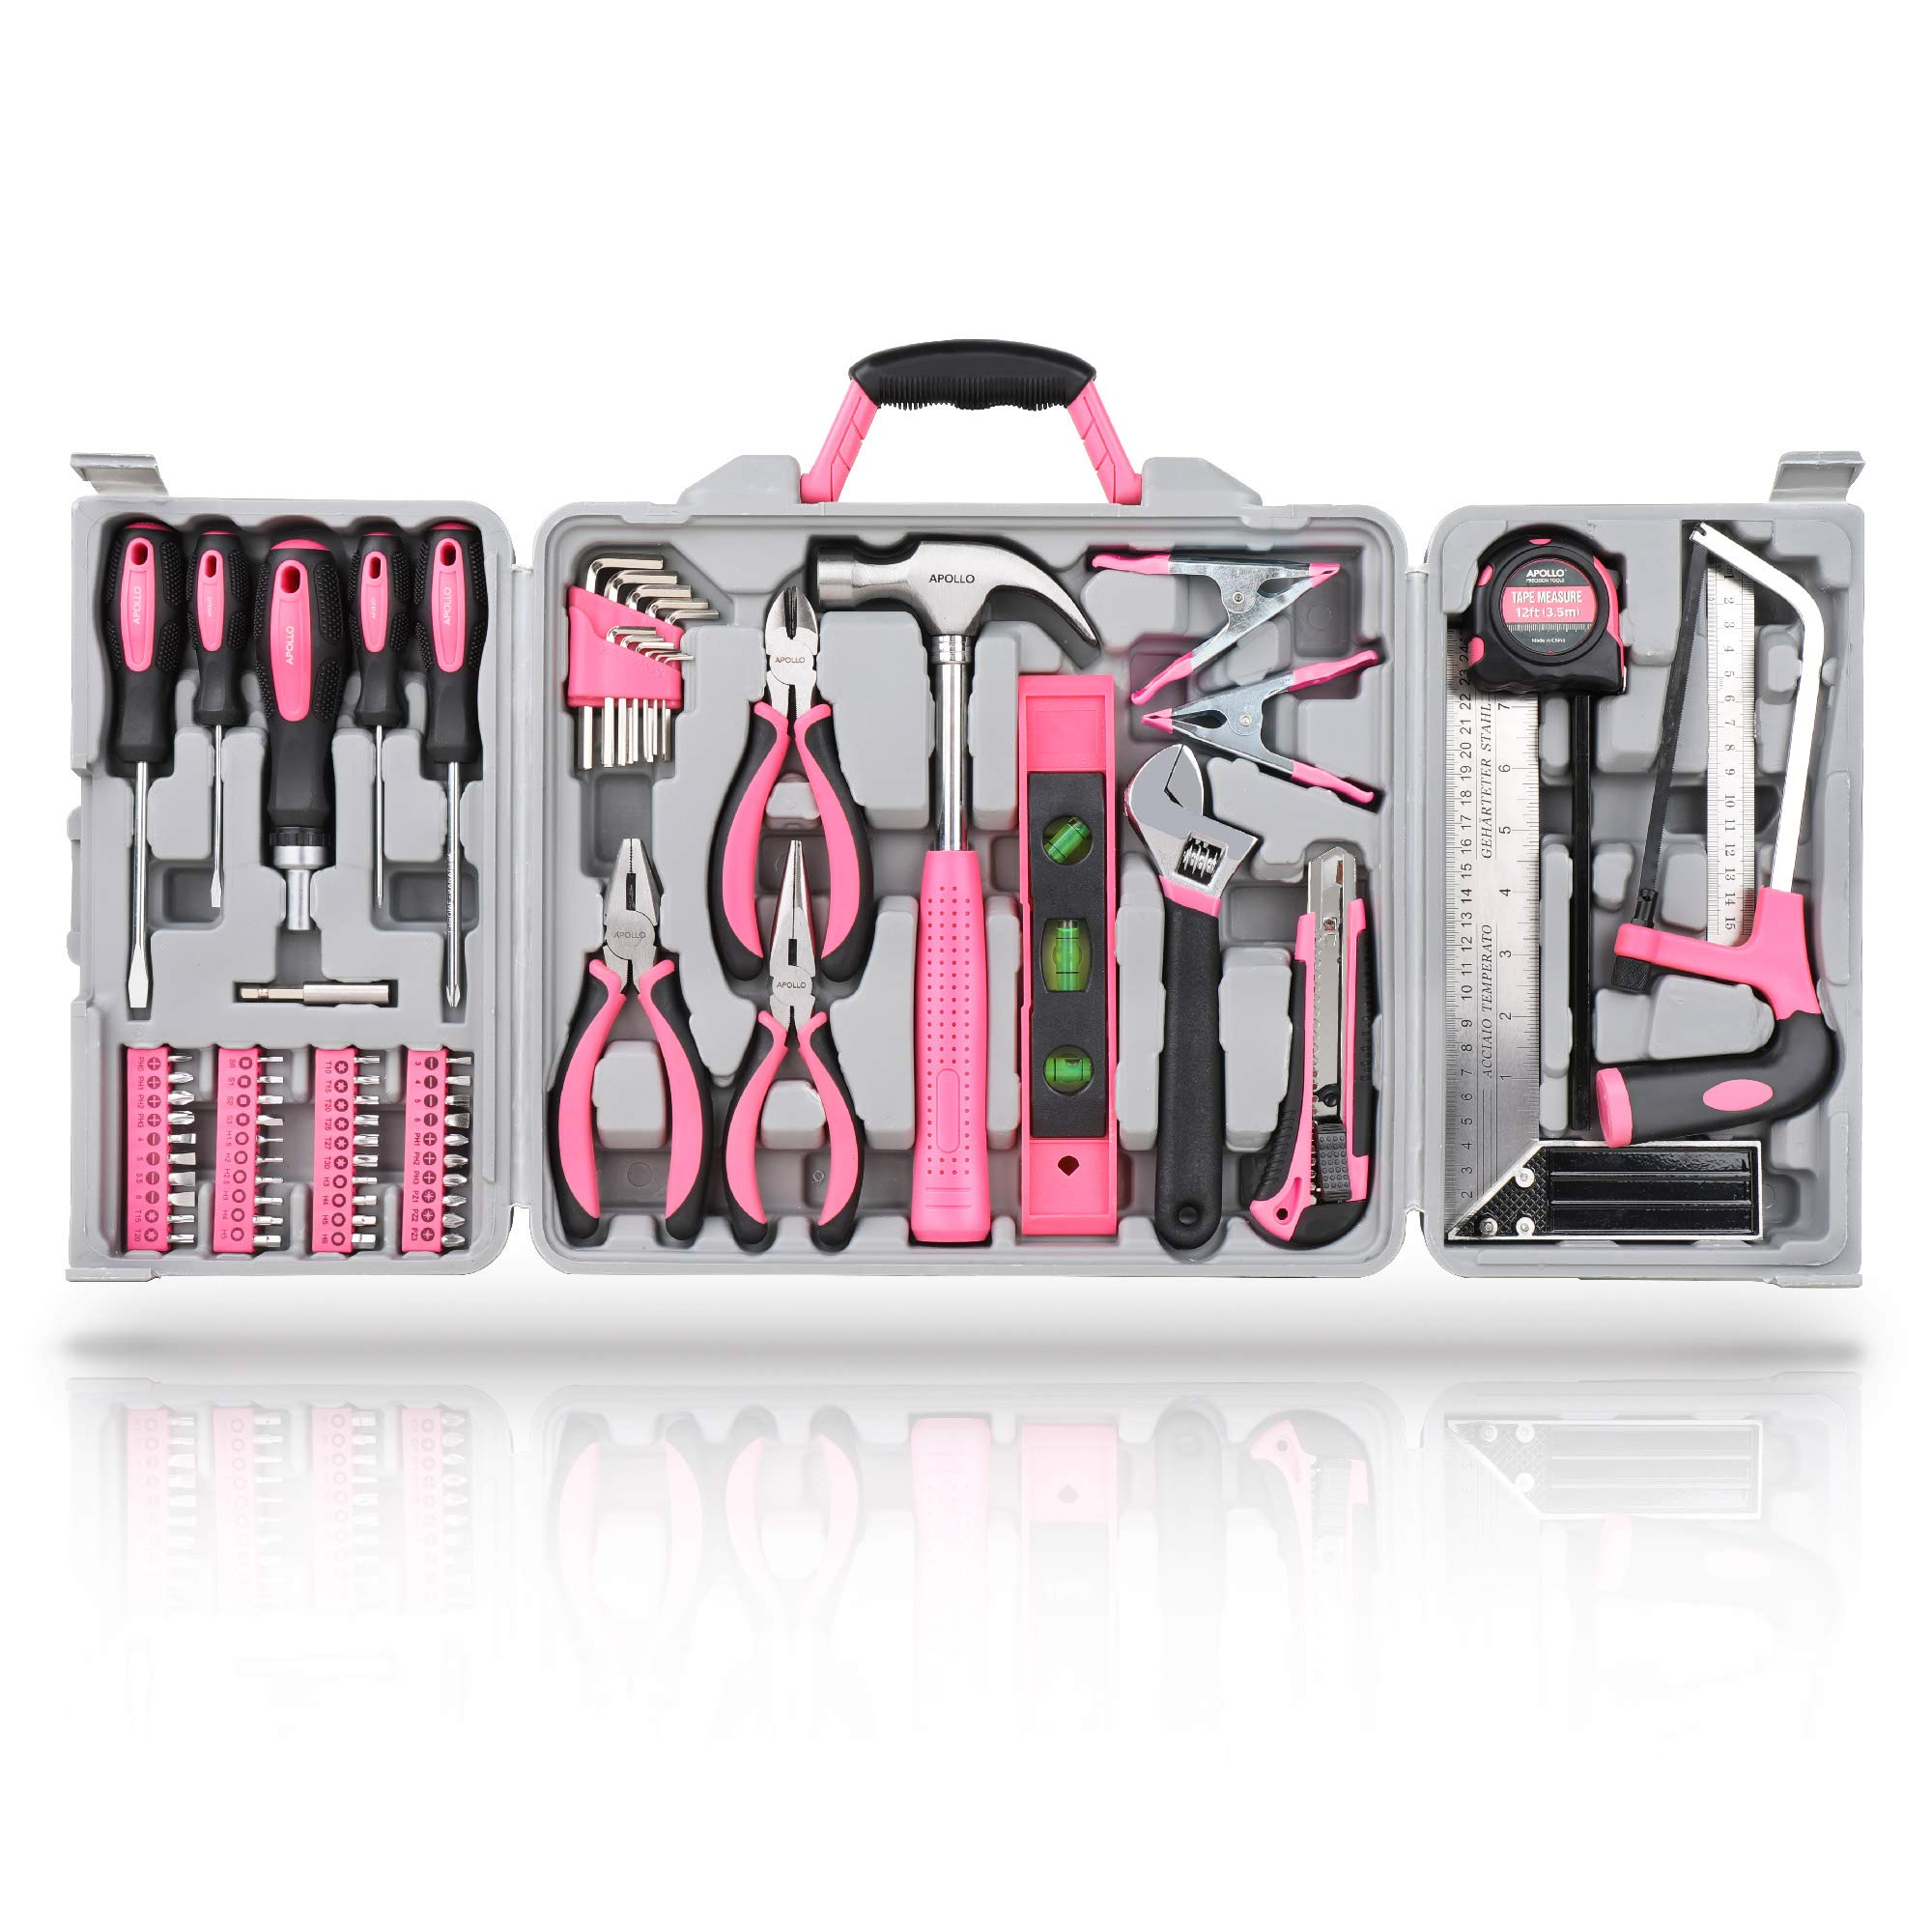 Hi-Spec 42 Piece Household DIY Hand Tool Kit Set All in a Carry Case Everyday Repairs at Home /& The Office with Practical Tools /& Precision Screwdriver Bits